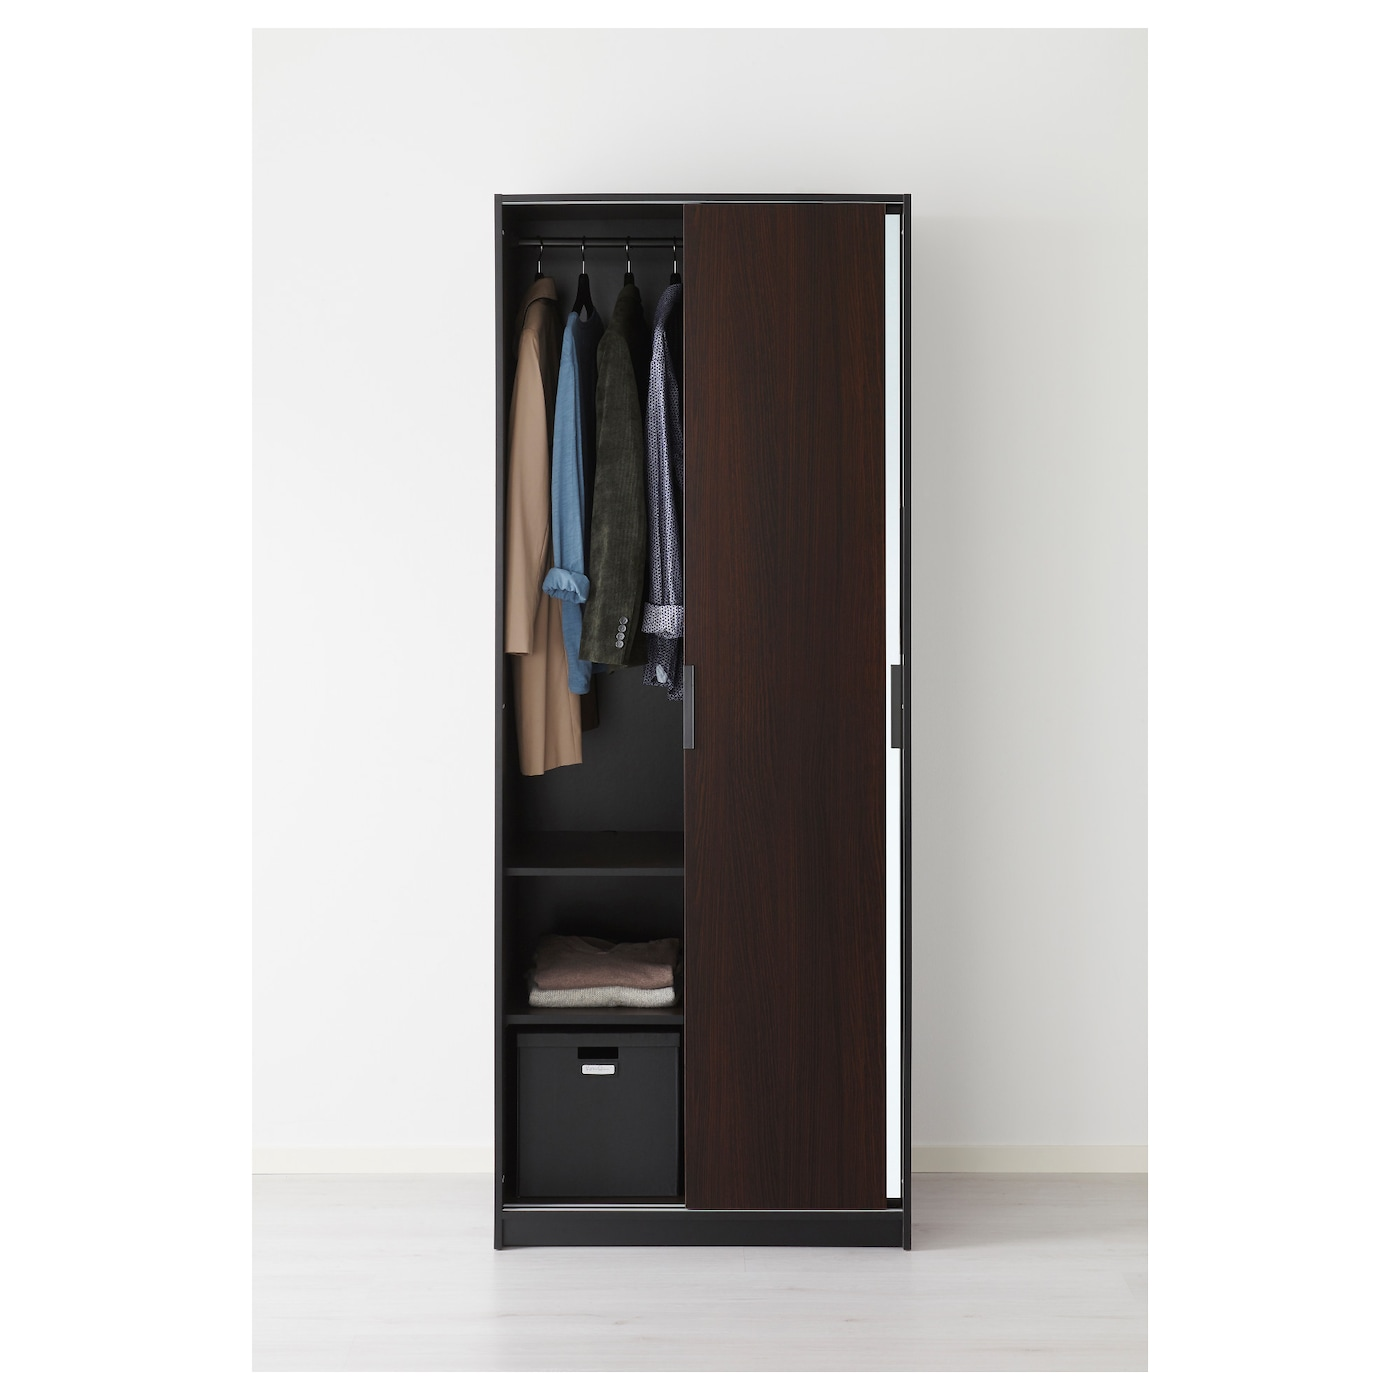 Ikea Schreibtisch Expedit Mit Regal ~ Wardrobe TRYSIL Dark brown mirror glass